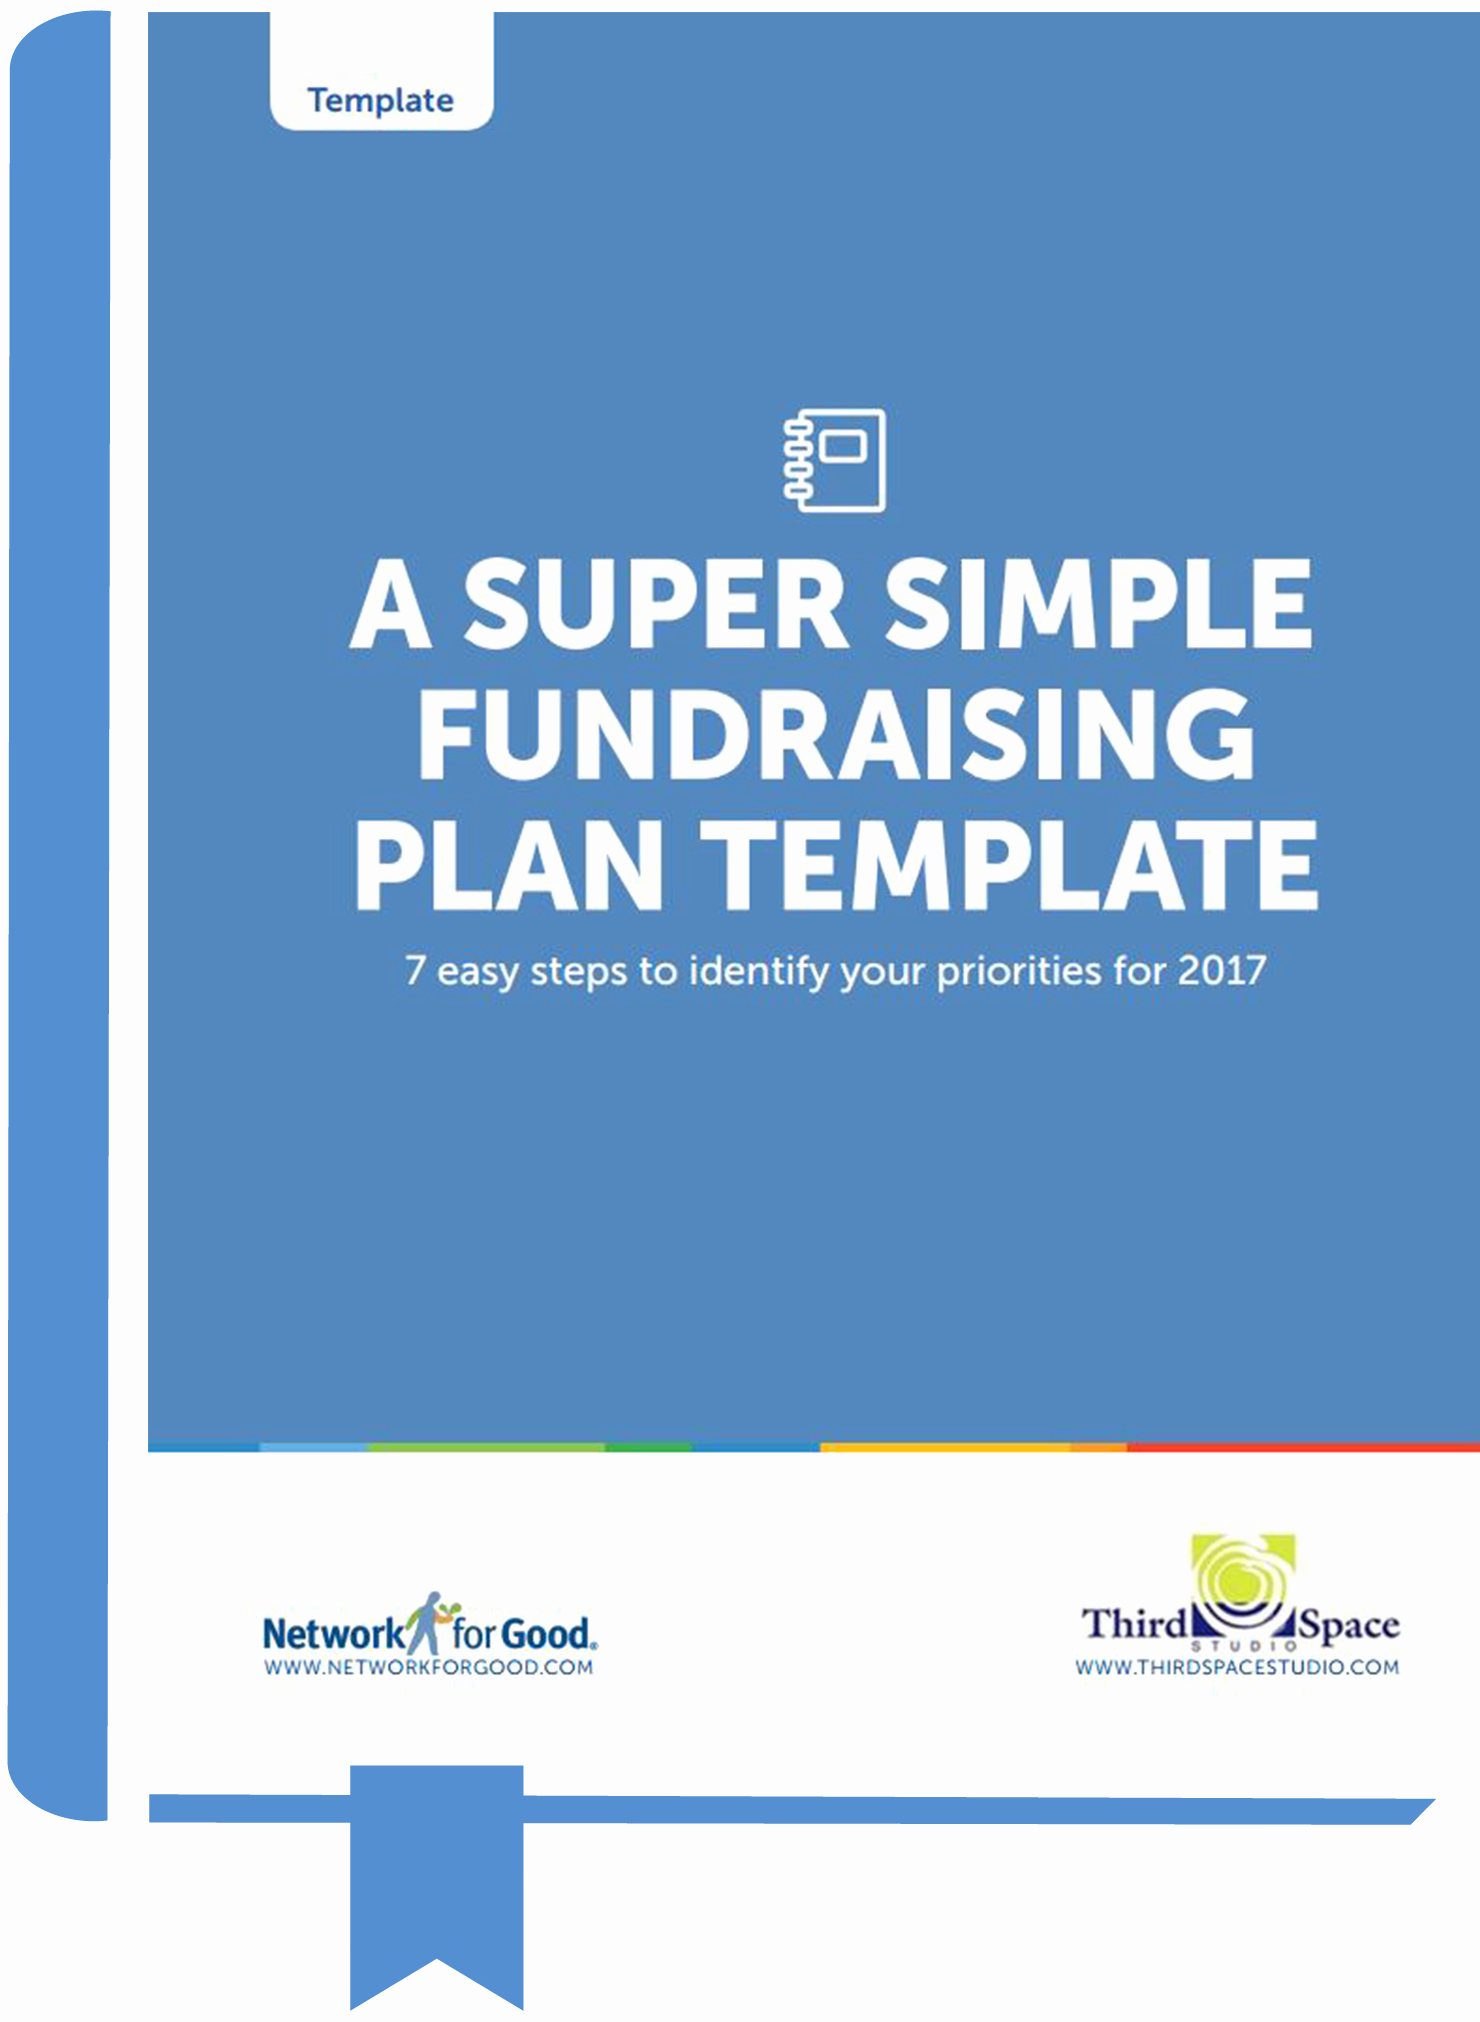 Nonprofit Marketing Plan Template Elegant the Super Simple Fundraising Plan for Nonprofits